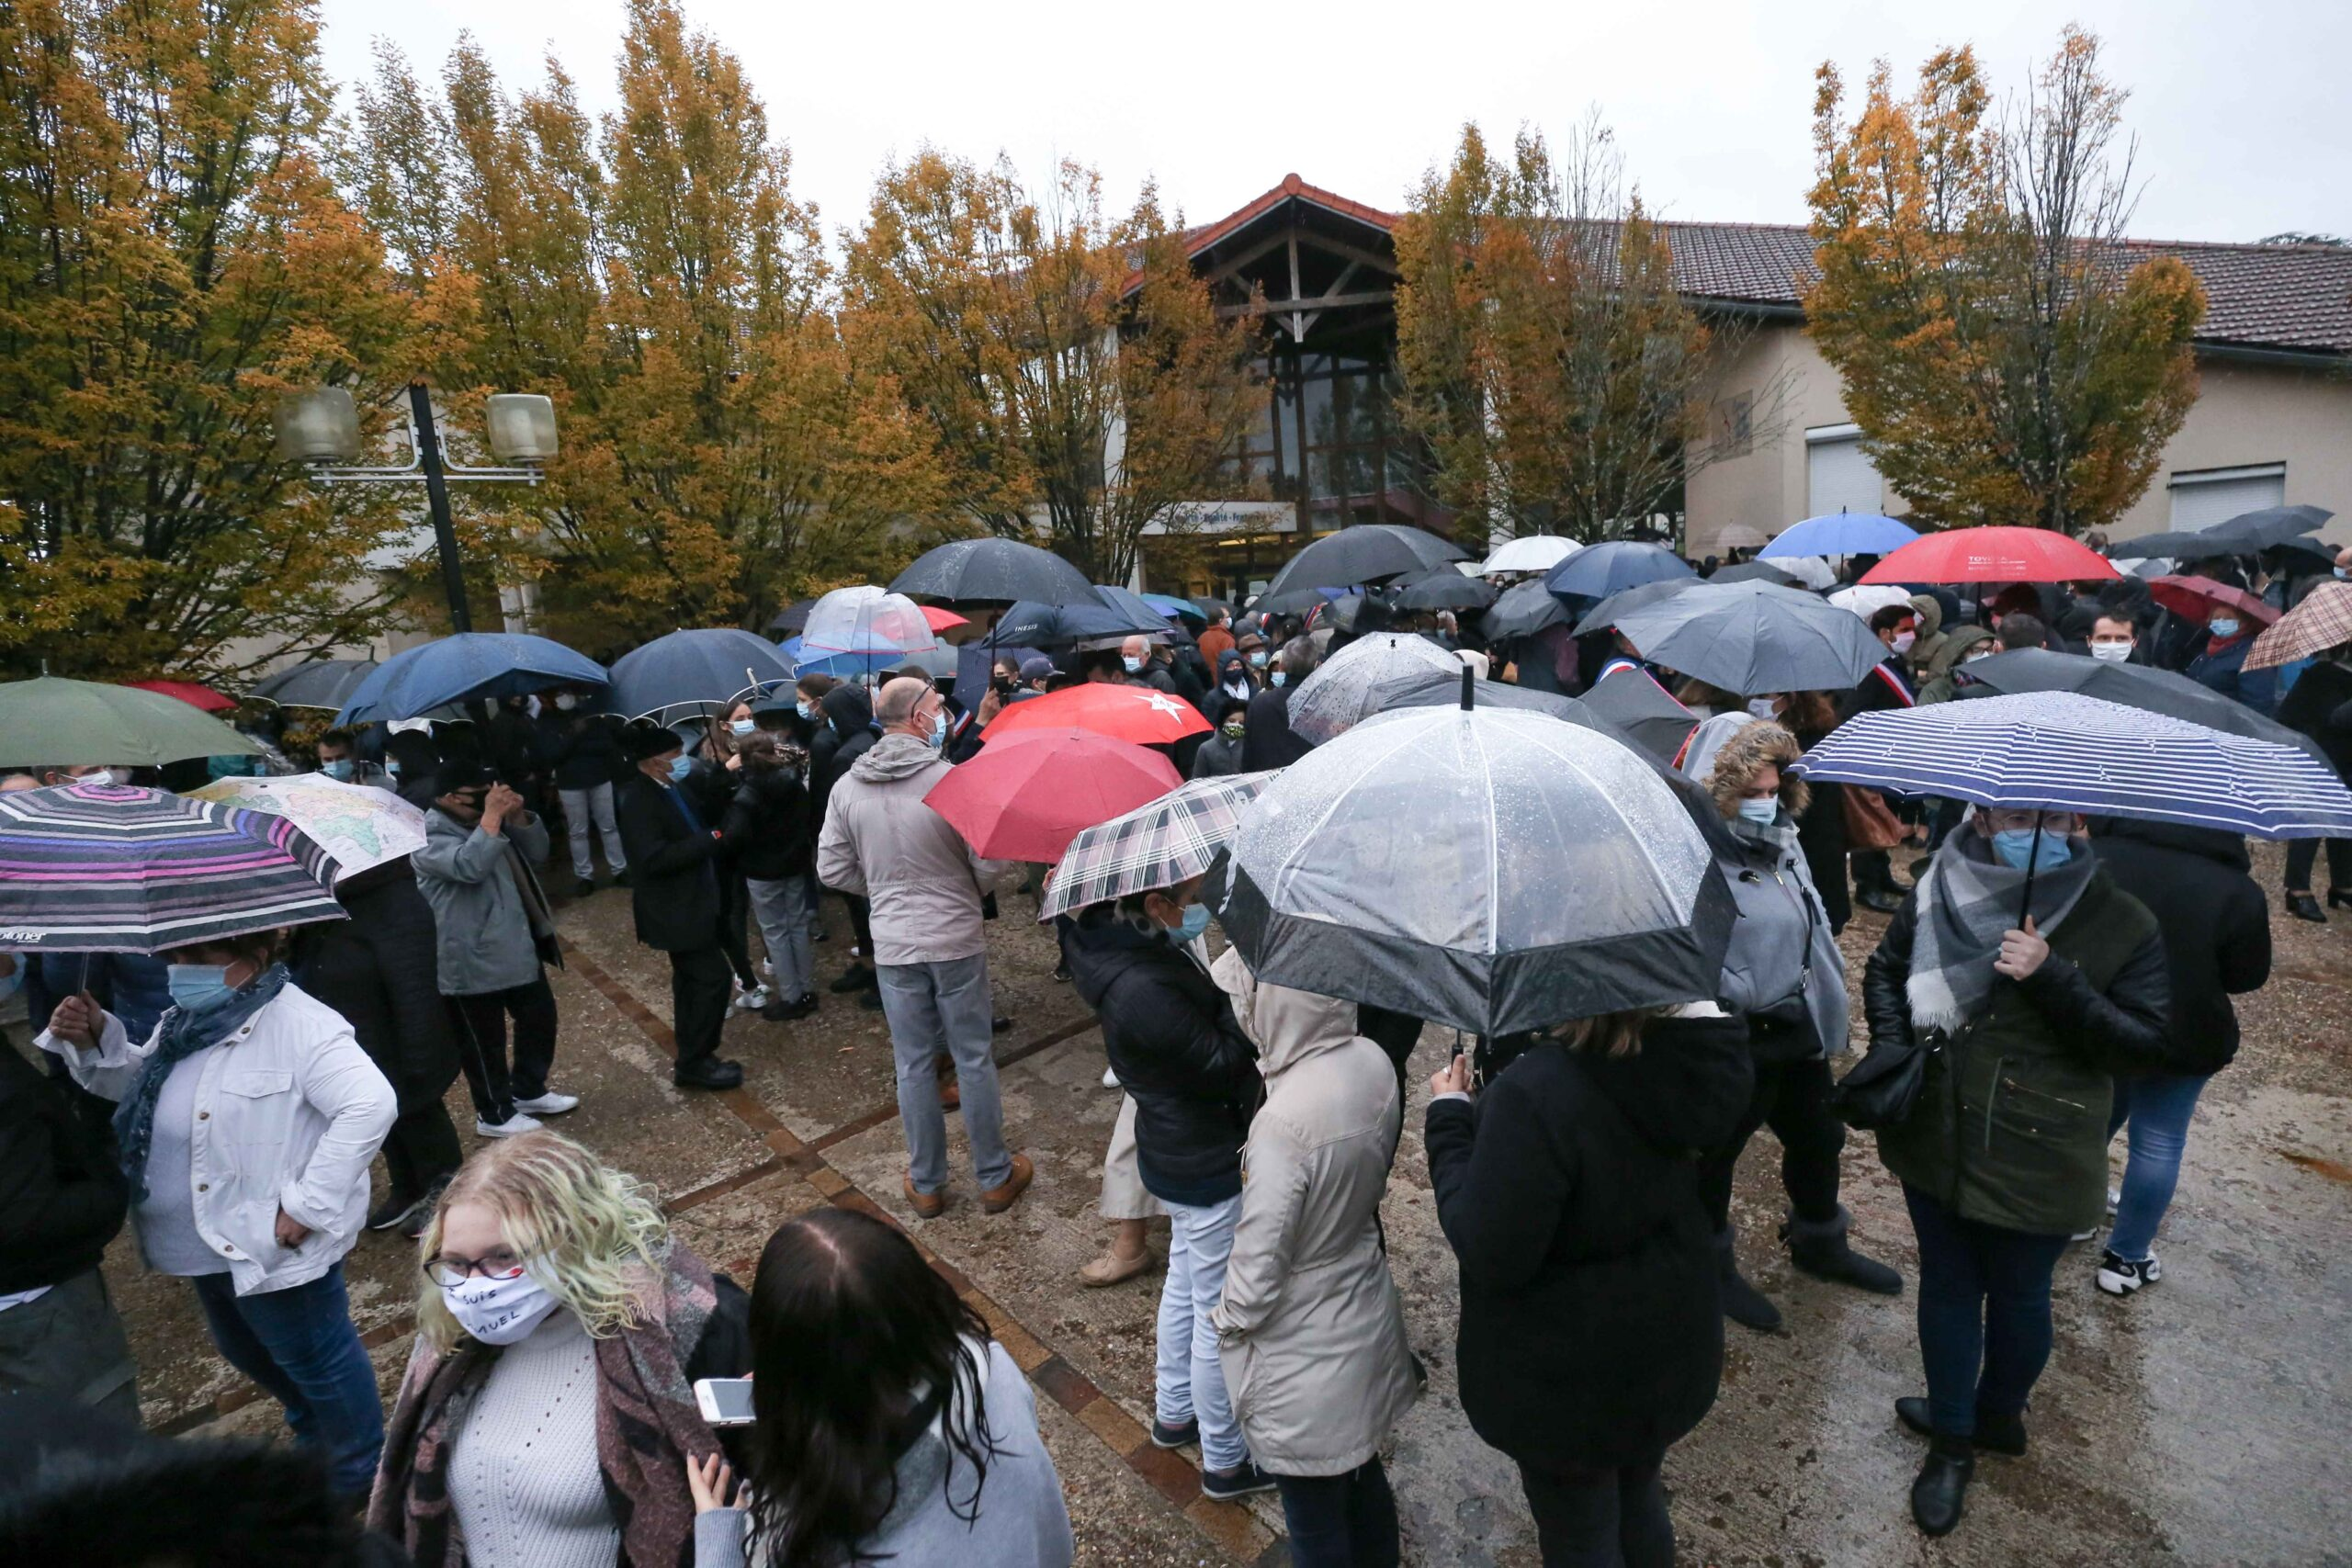 People gather at the middle school in Conflans-Sainte-Honorine, northwest of Paris, on October 20, 2020 during the 'Marche Blanche' in solidarity after a teacher was beheaded for showing pupils cartoons of the Prophet Mohammed. His murder in a Paris suburb